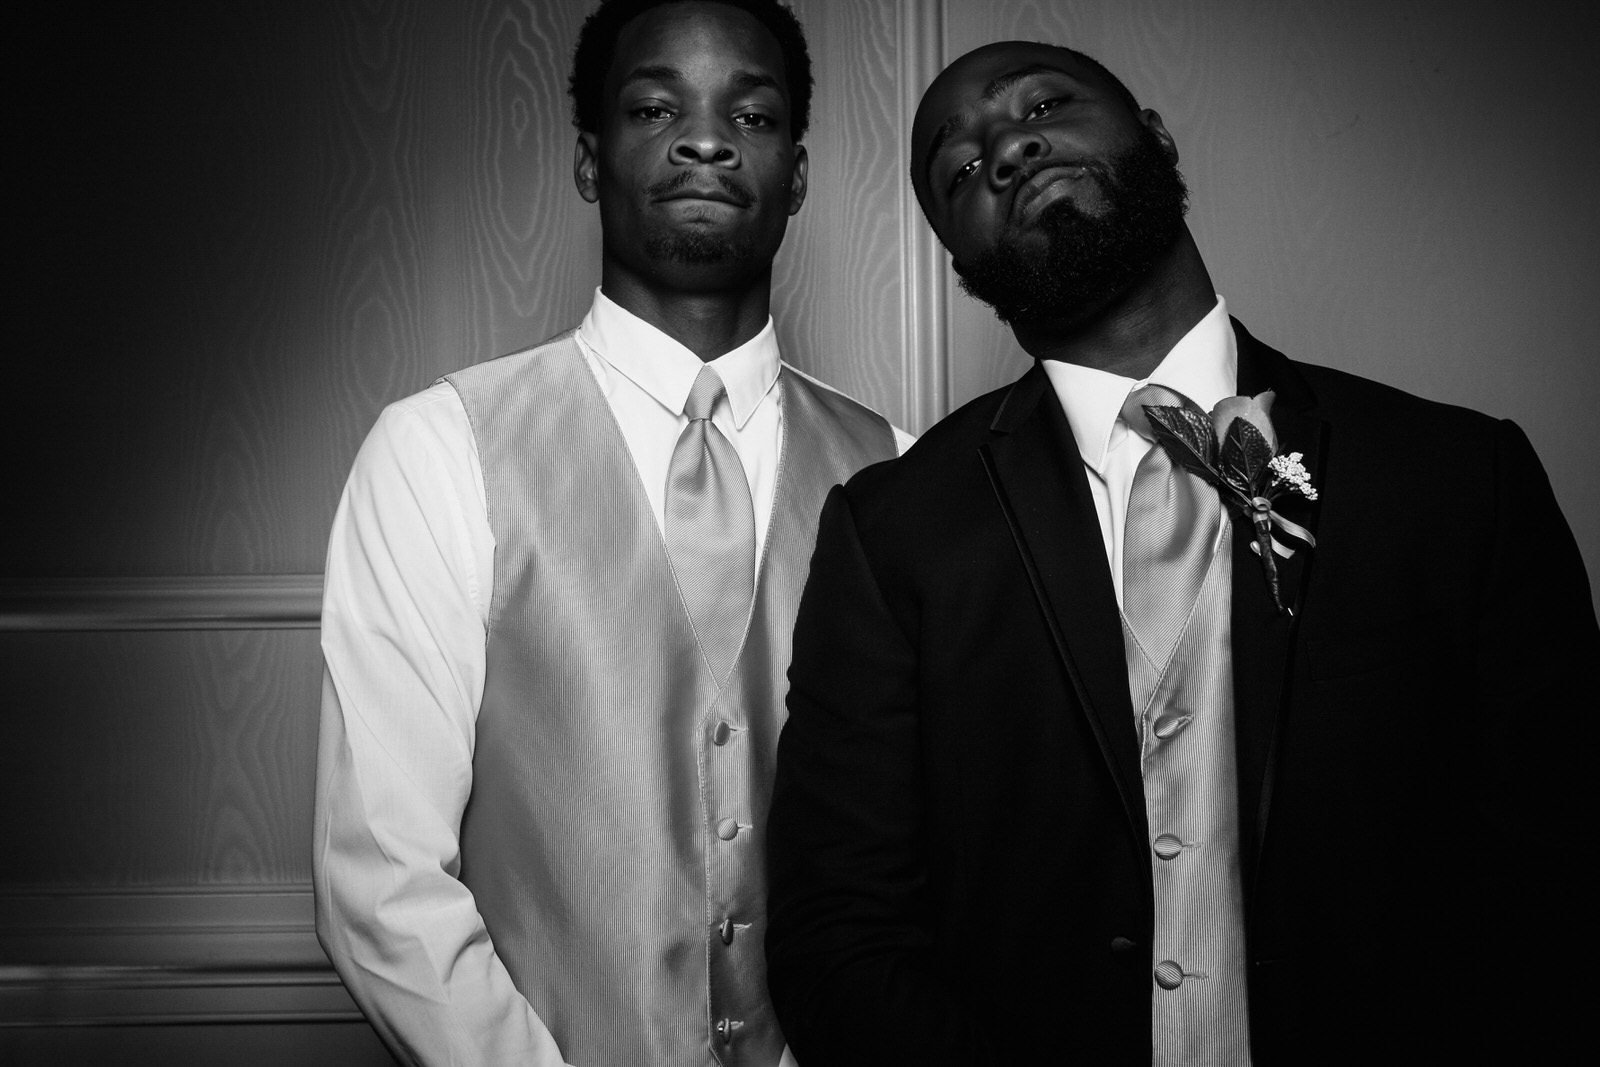 Ashley-Tyrone-Wedding-Photo-Booth-Presidential_Norristown-Wedding-21.jpg